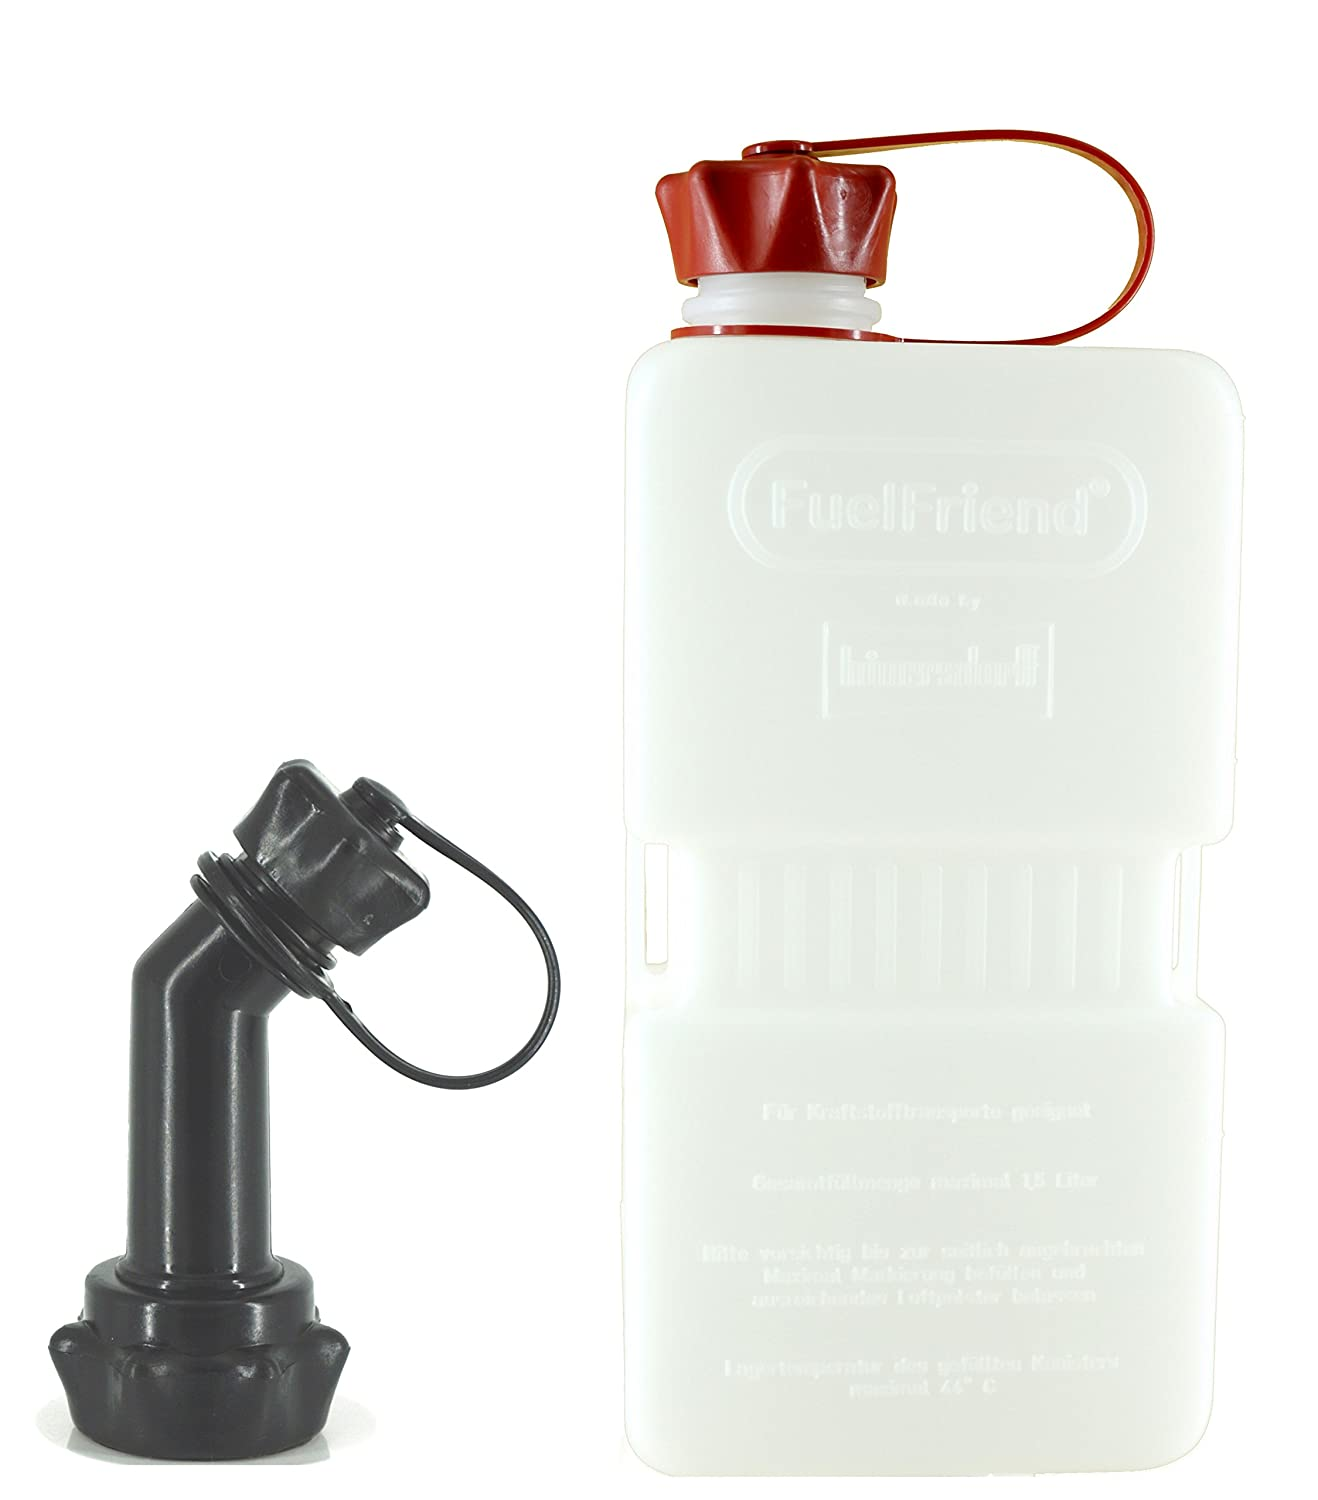 FuelFriend® -PLUS CLEAR - Jerrycan 1.5 liters + spout lockable hünersdorff FFPC15FRv